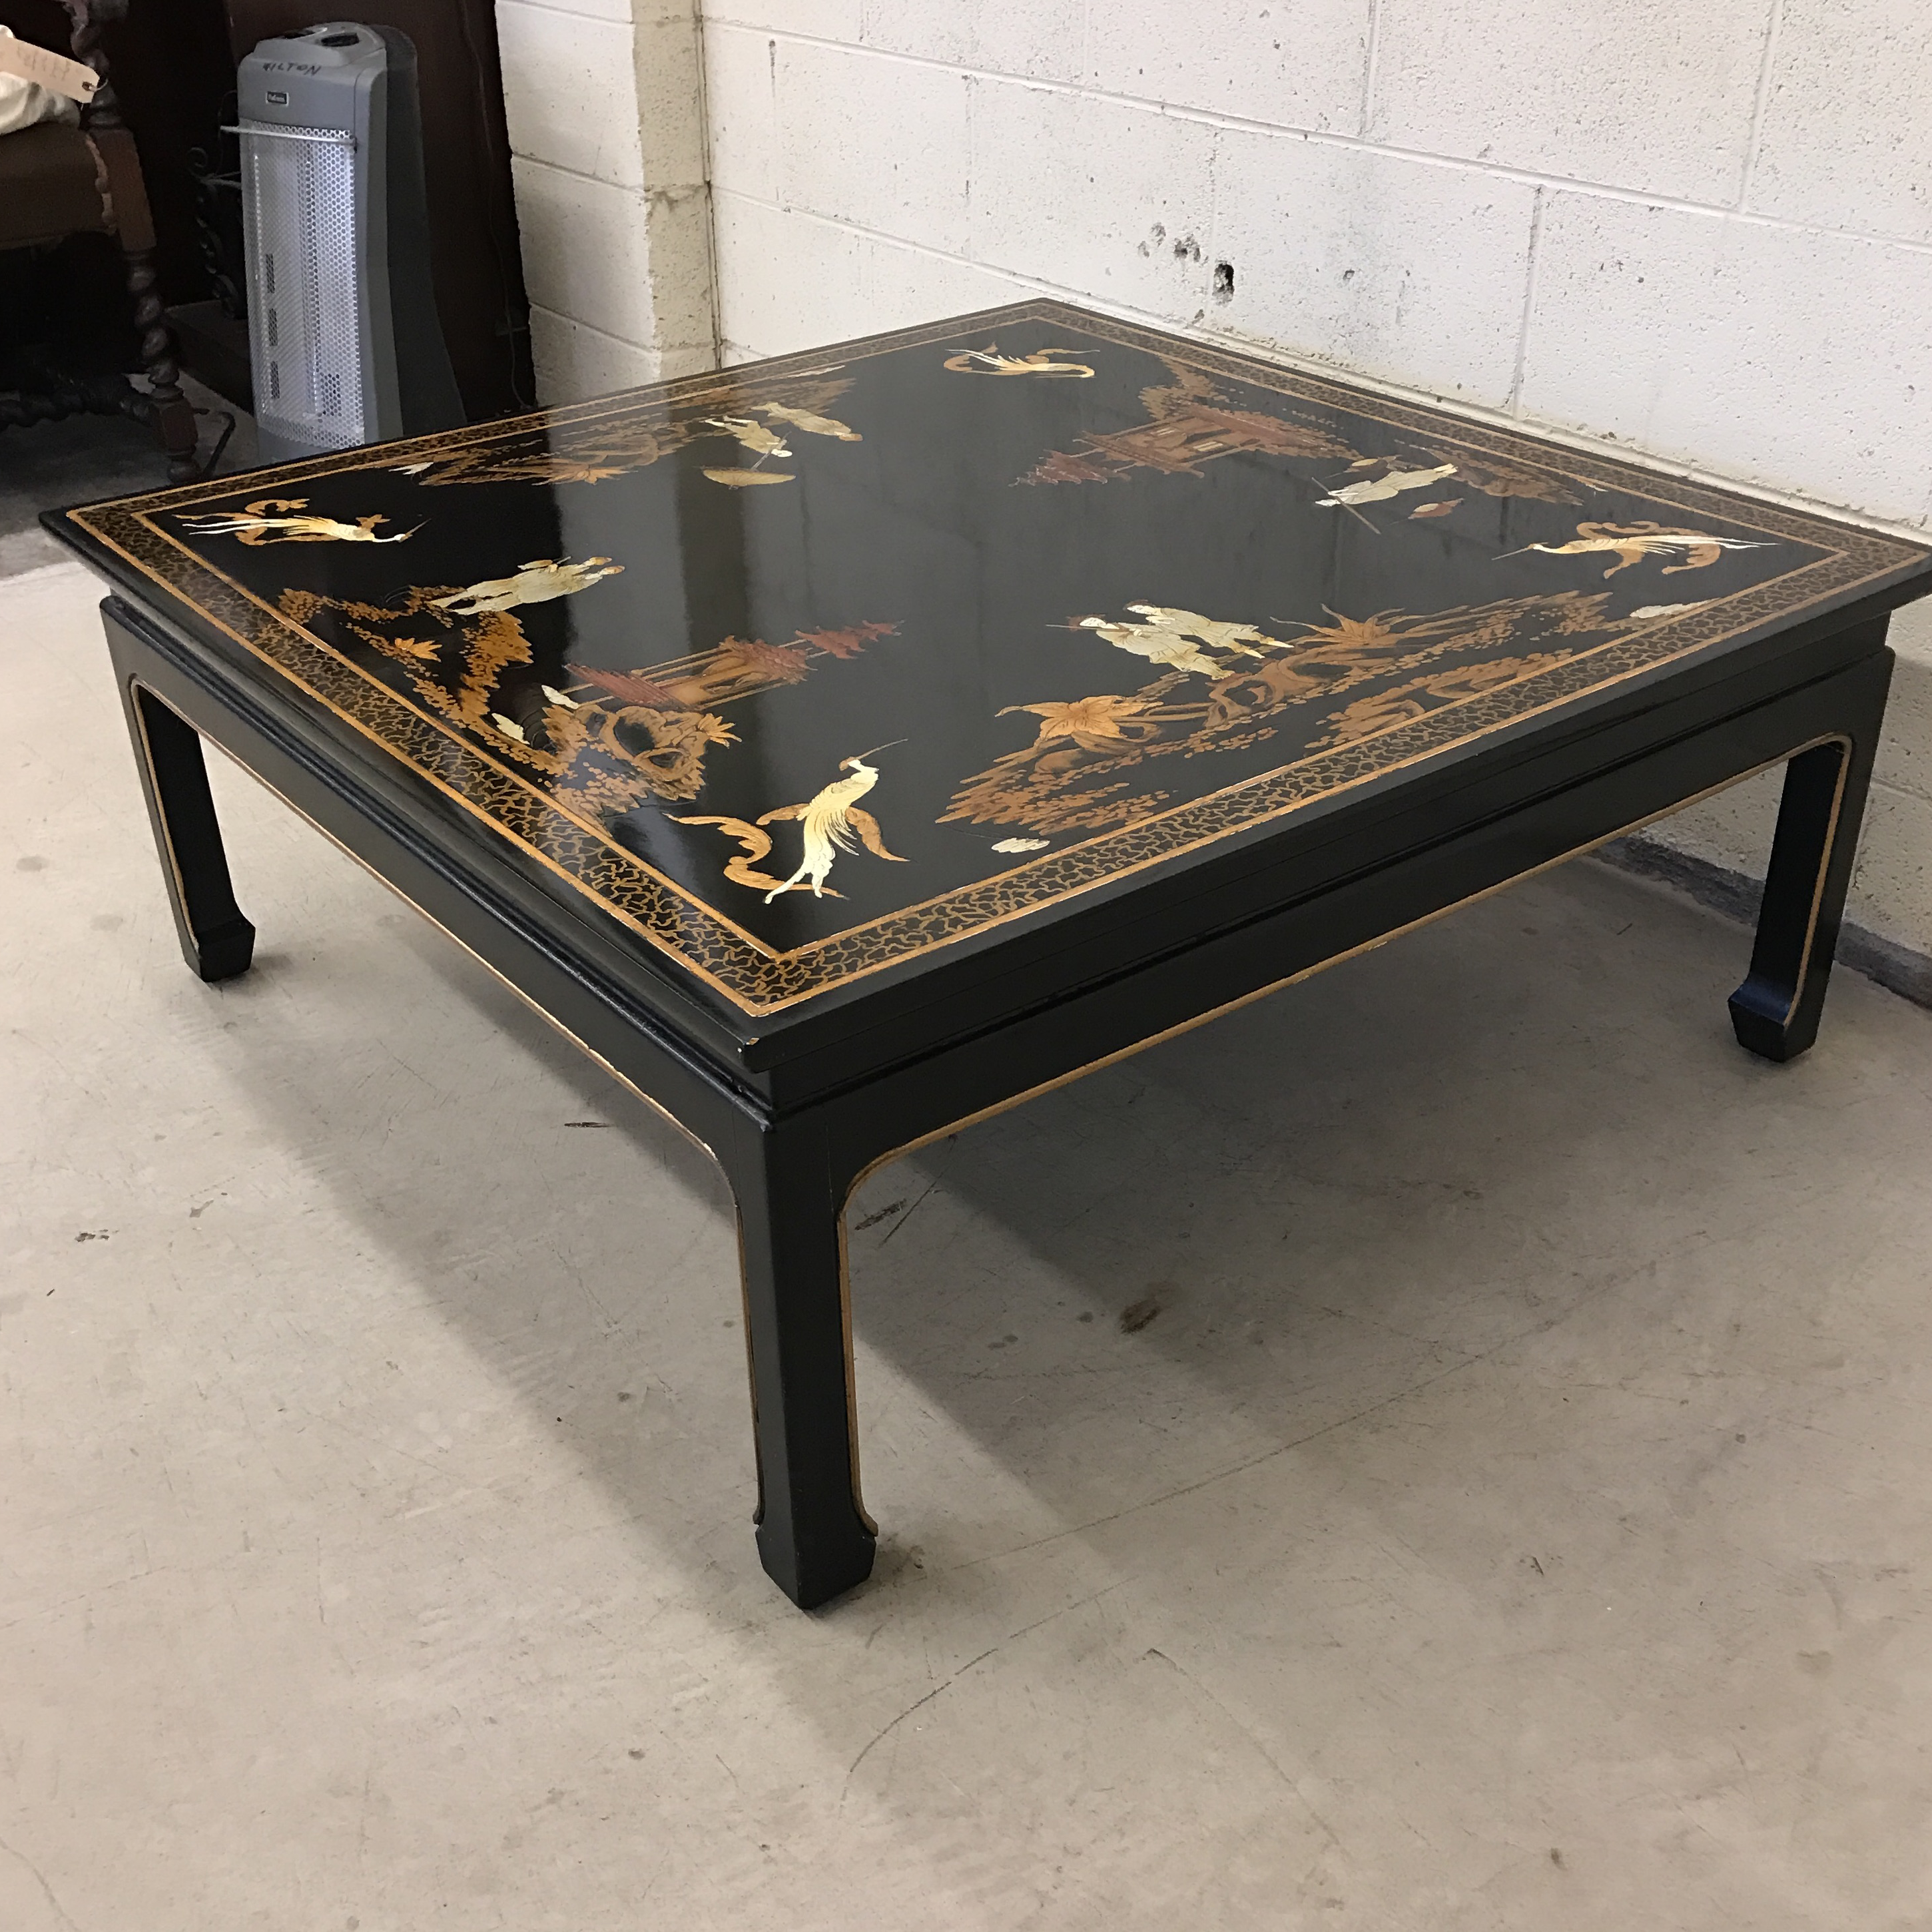 Vintage Asian Style Black HandPainted Coffee Table Chairish